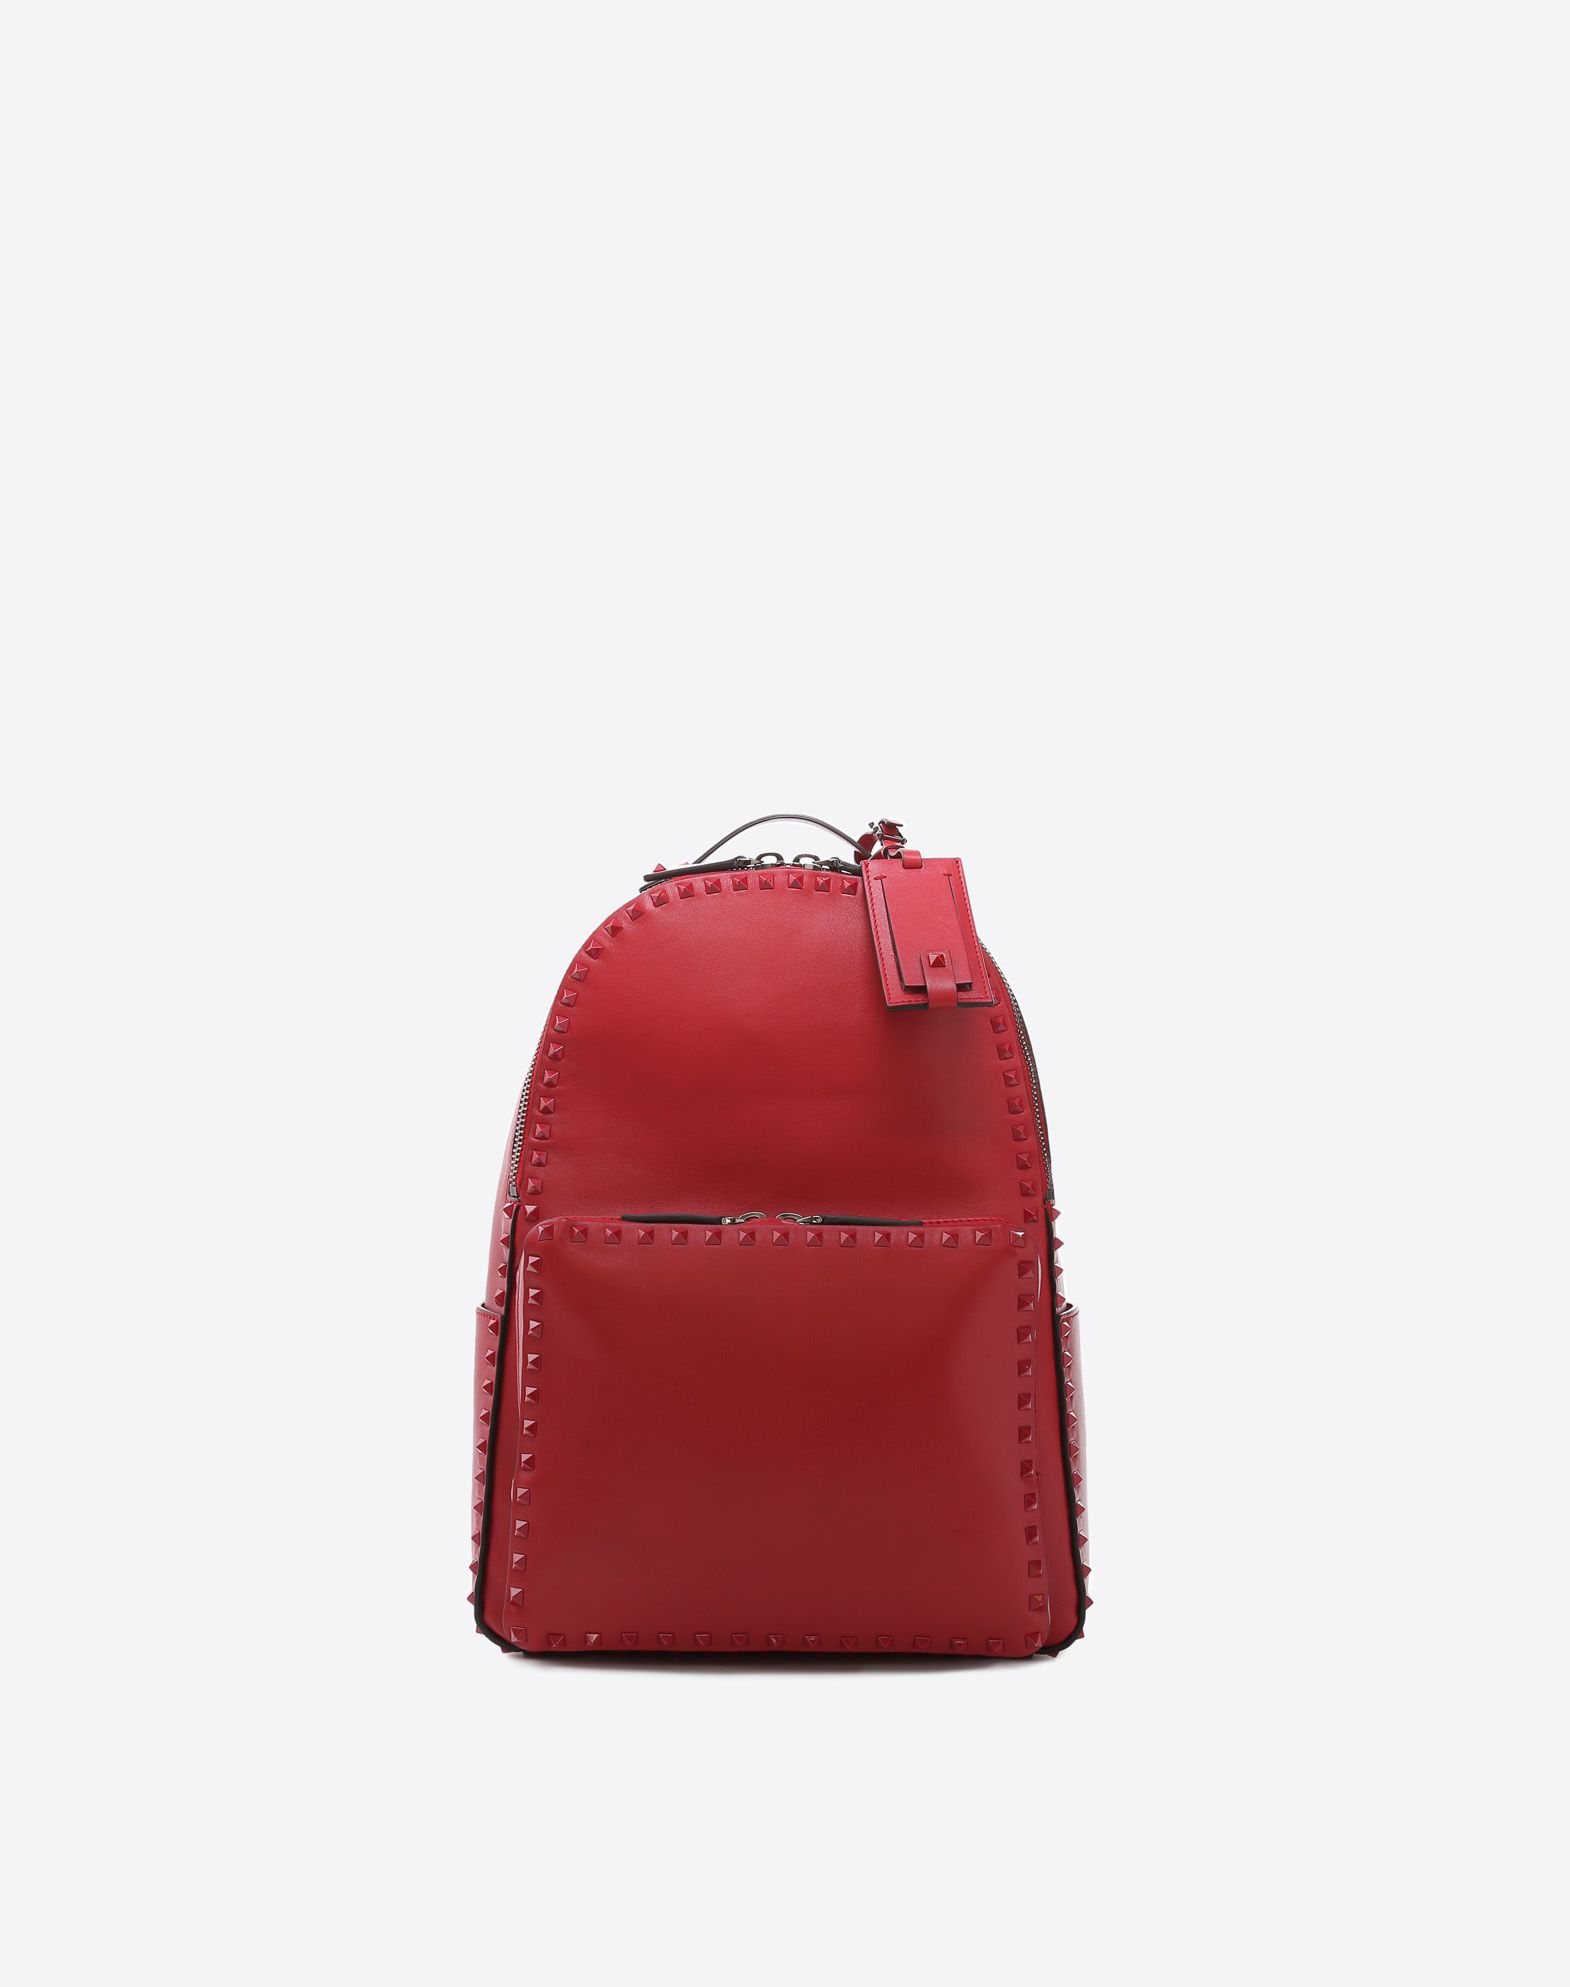 VALENTINO GARAVANI UOMO Rockstud Untitled Rosso Backpack Backpack U f